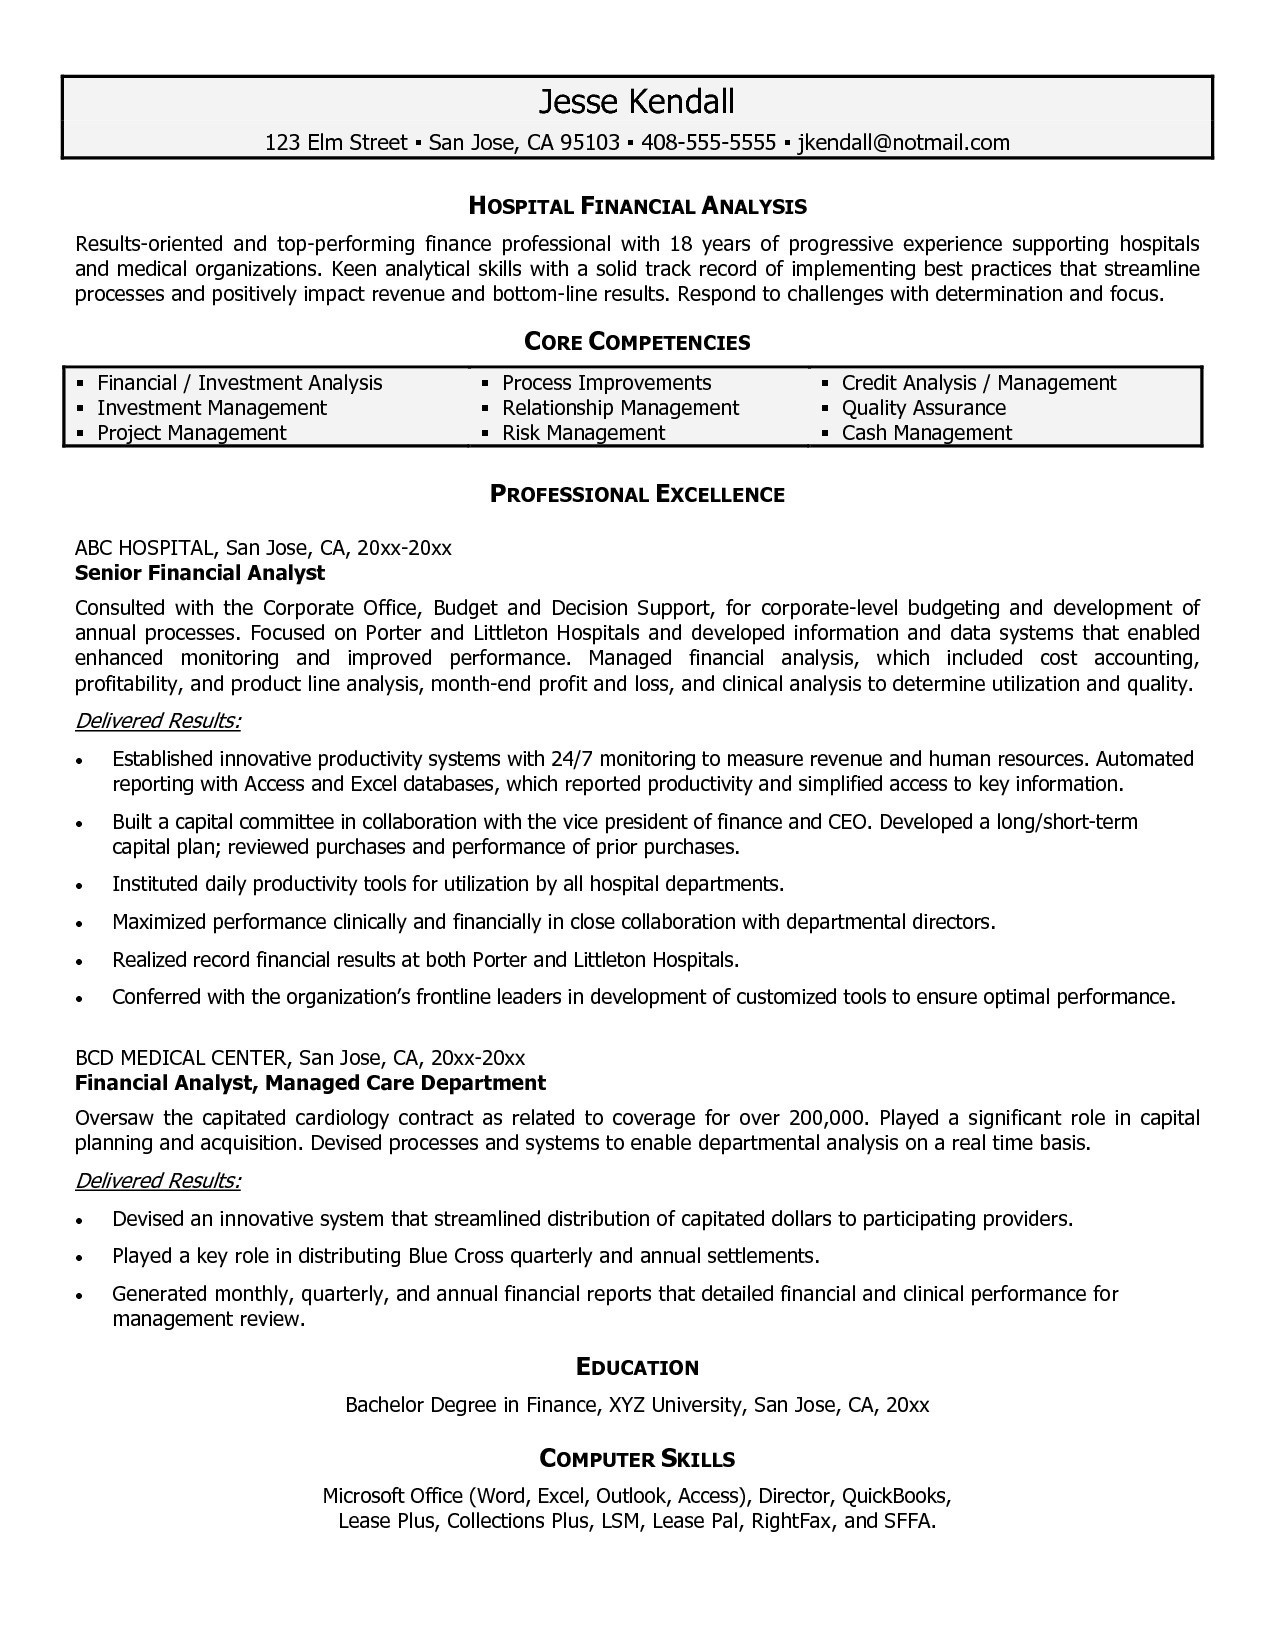 Financial Advisor Resume - Entry Level Financial Advisor Resume Reference Fresh Resume Template